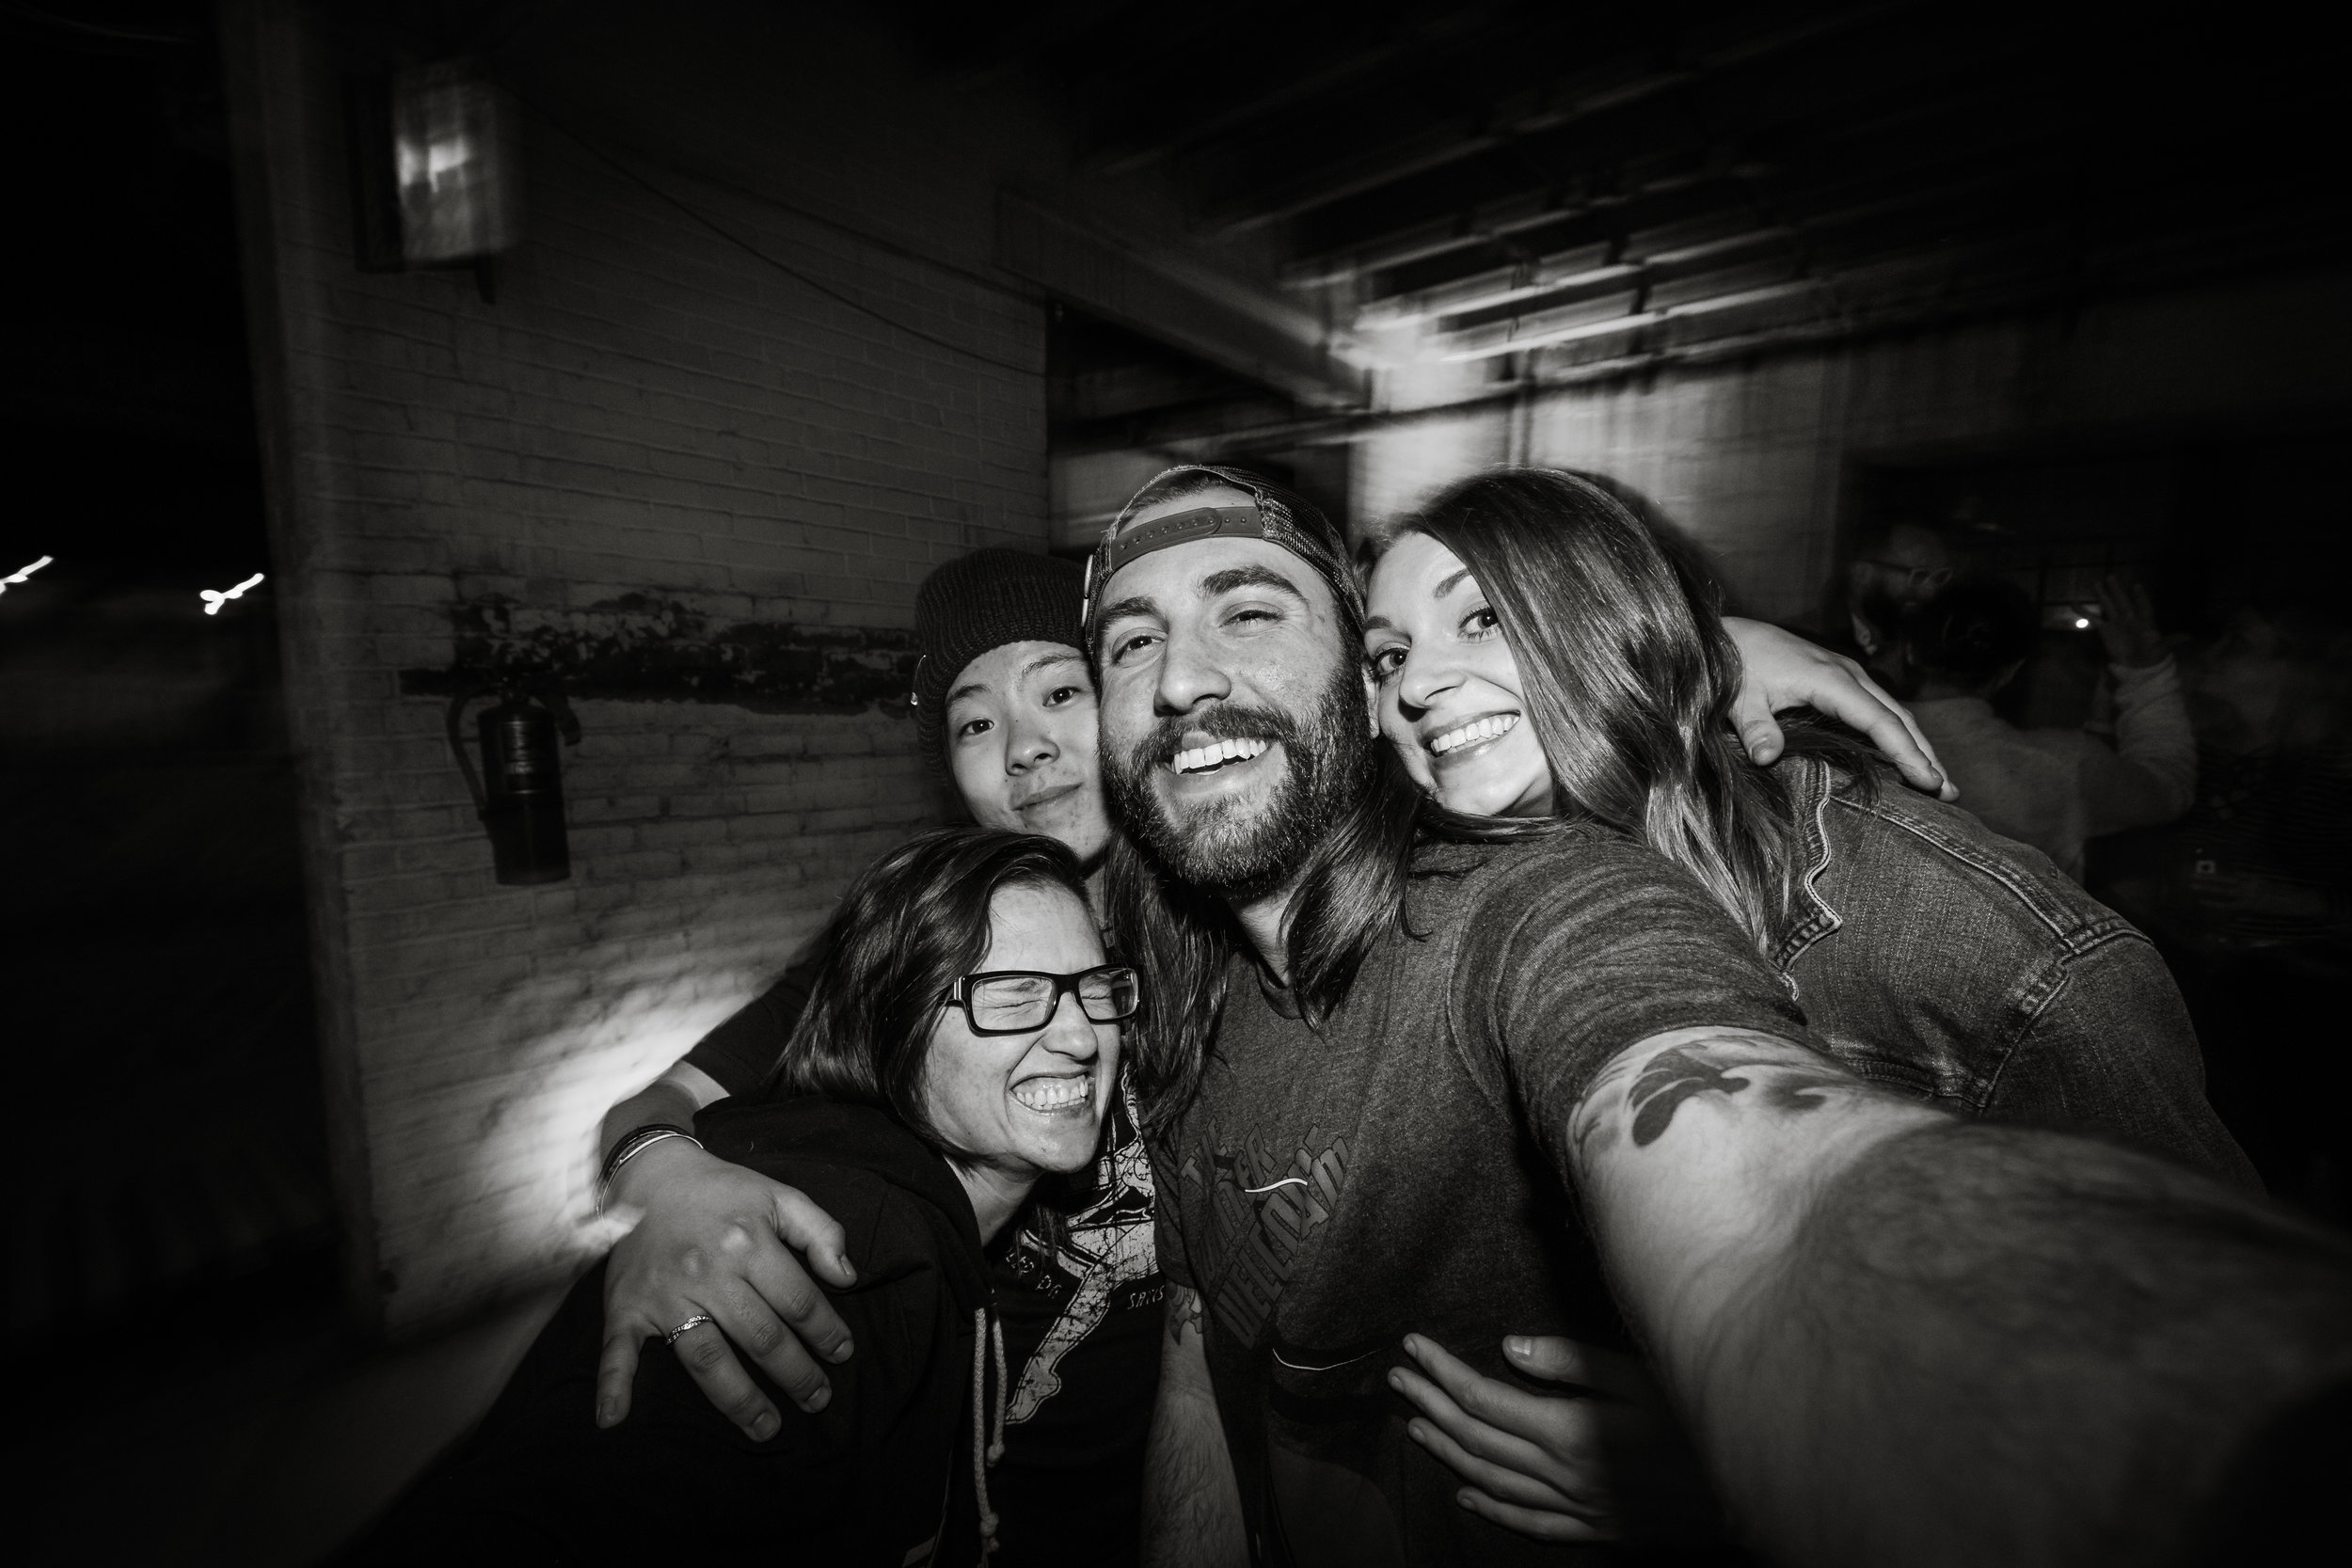 2017.2.25_party_bw (221 of 237).jpg